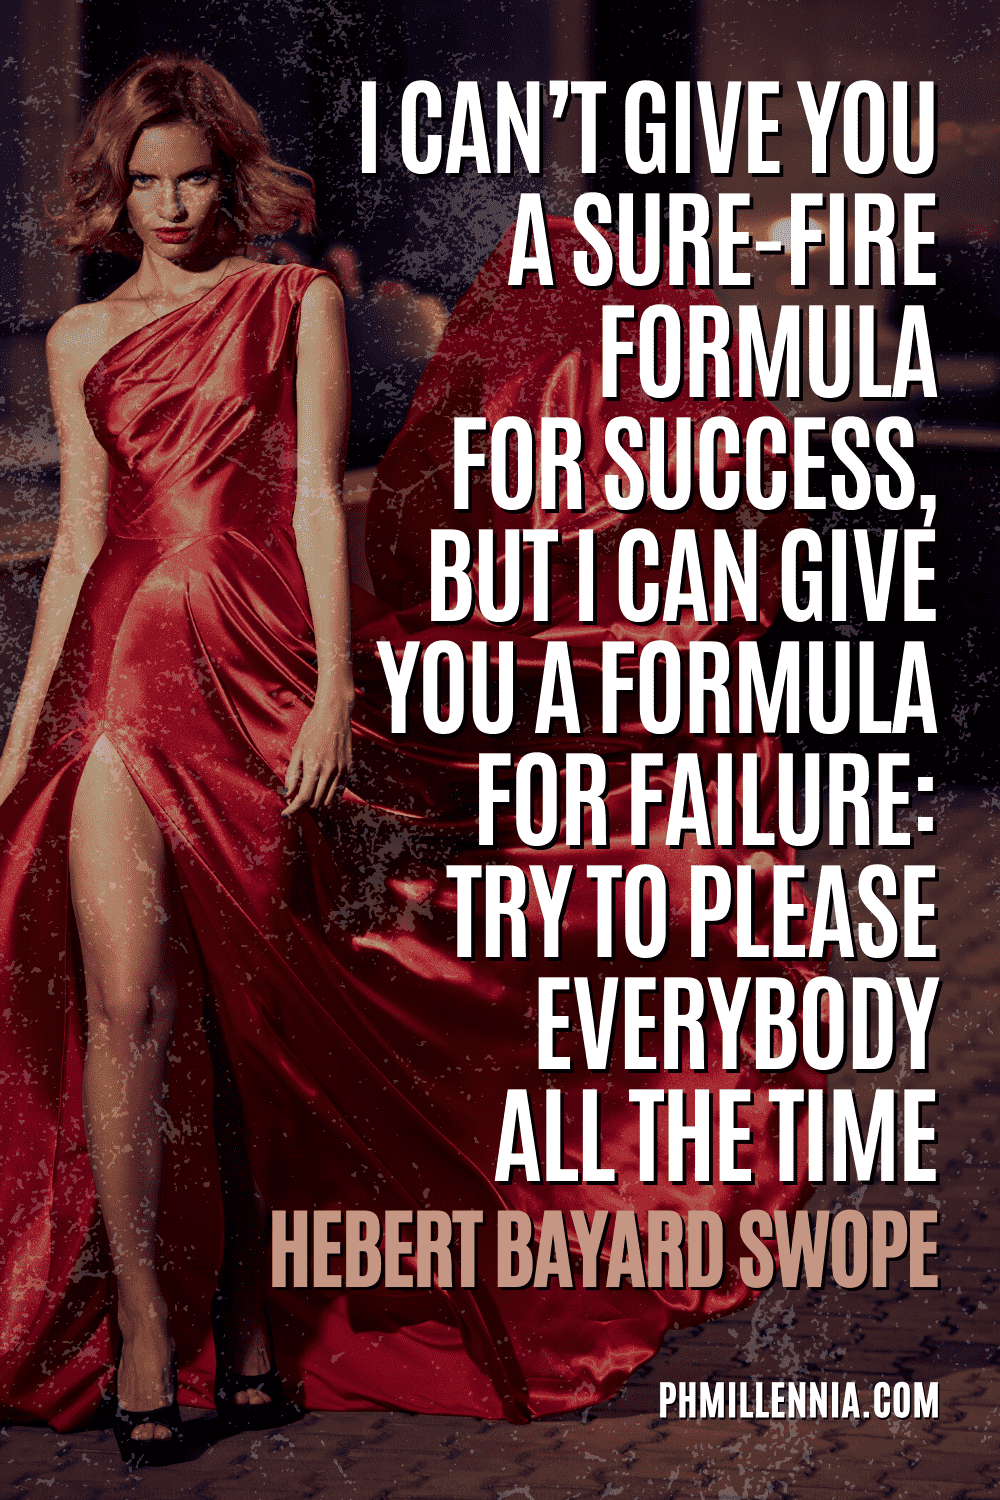 A graphic containing text on an image of a woman in a billowing red dress